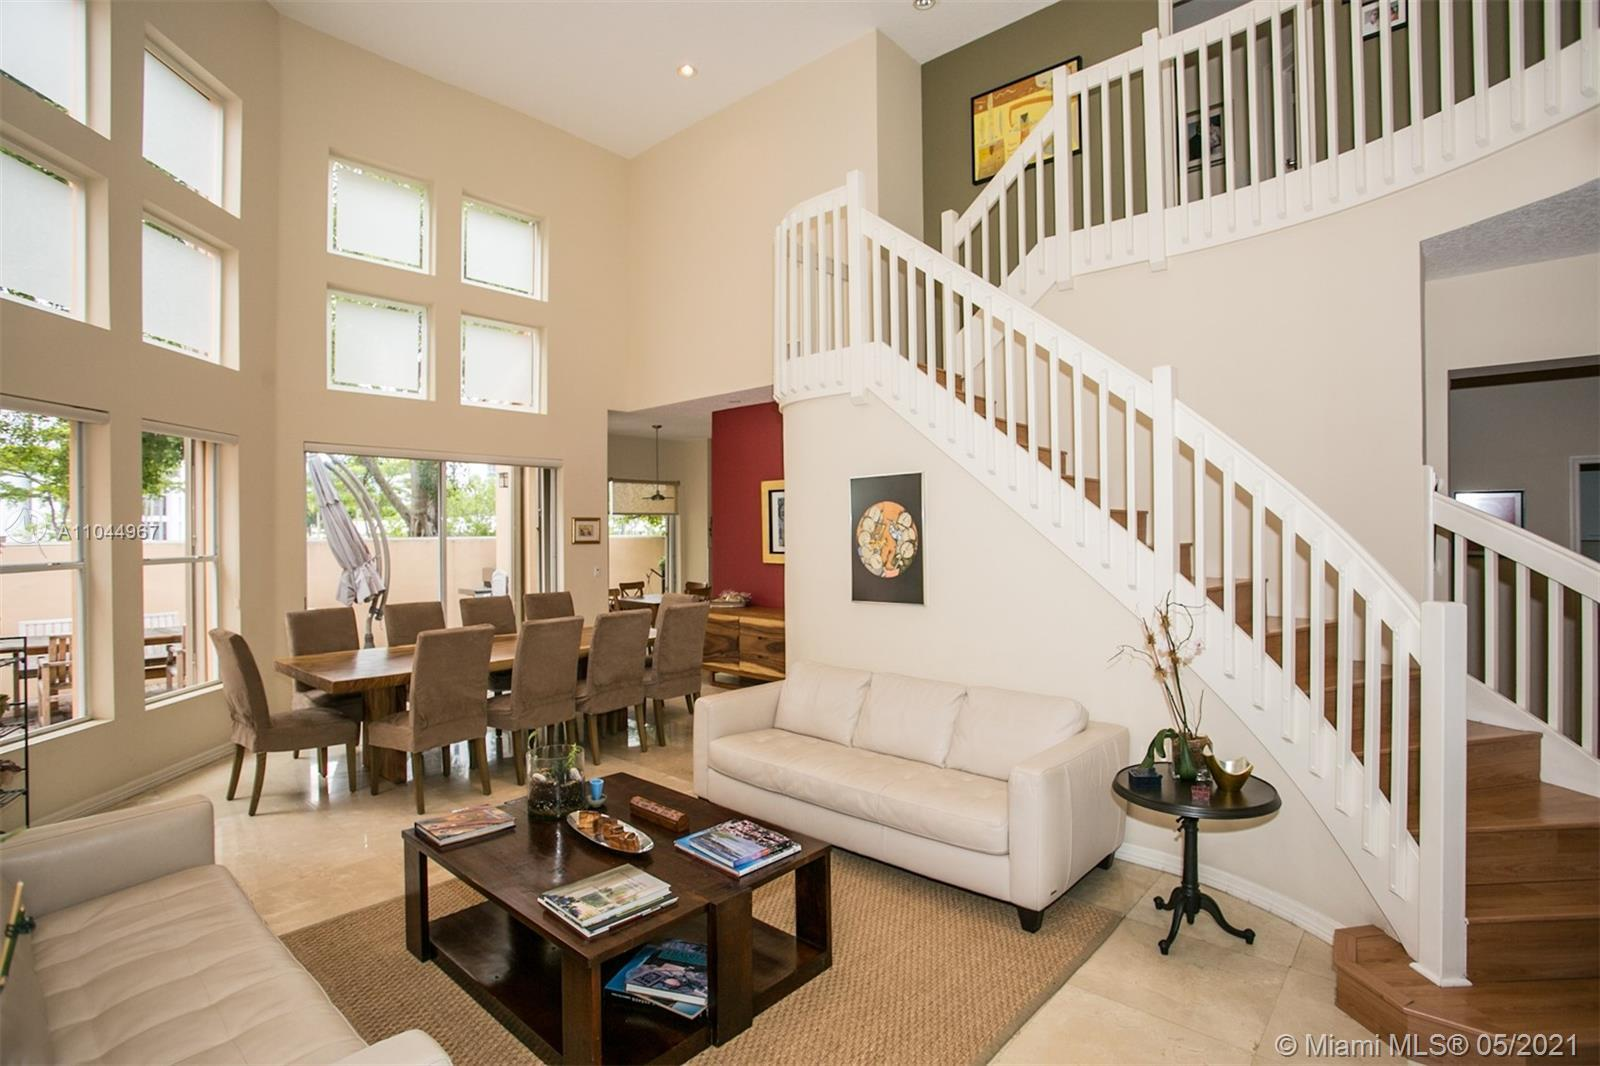 Impeccable house with 4 bedrooms, 3 bathrooms & a 2 car garage in the prestigious gated community of